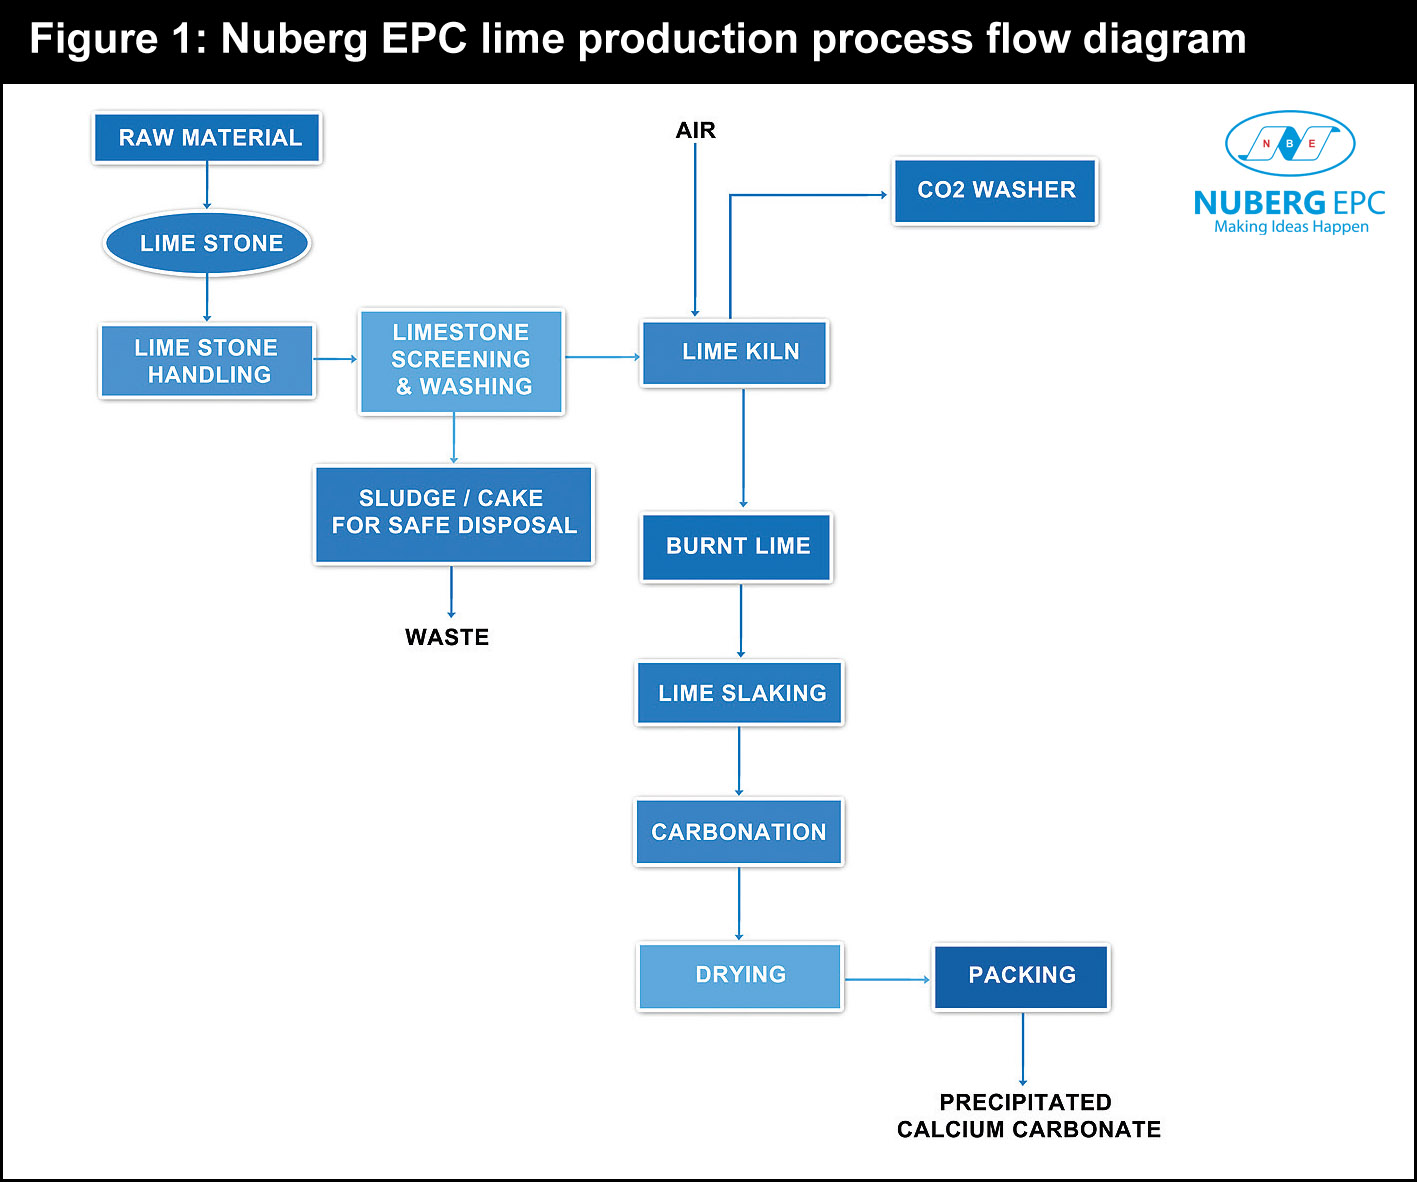 cement process flow diagram human head and neck muscle labeled international review icr lime plant crescent